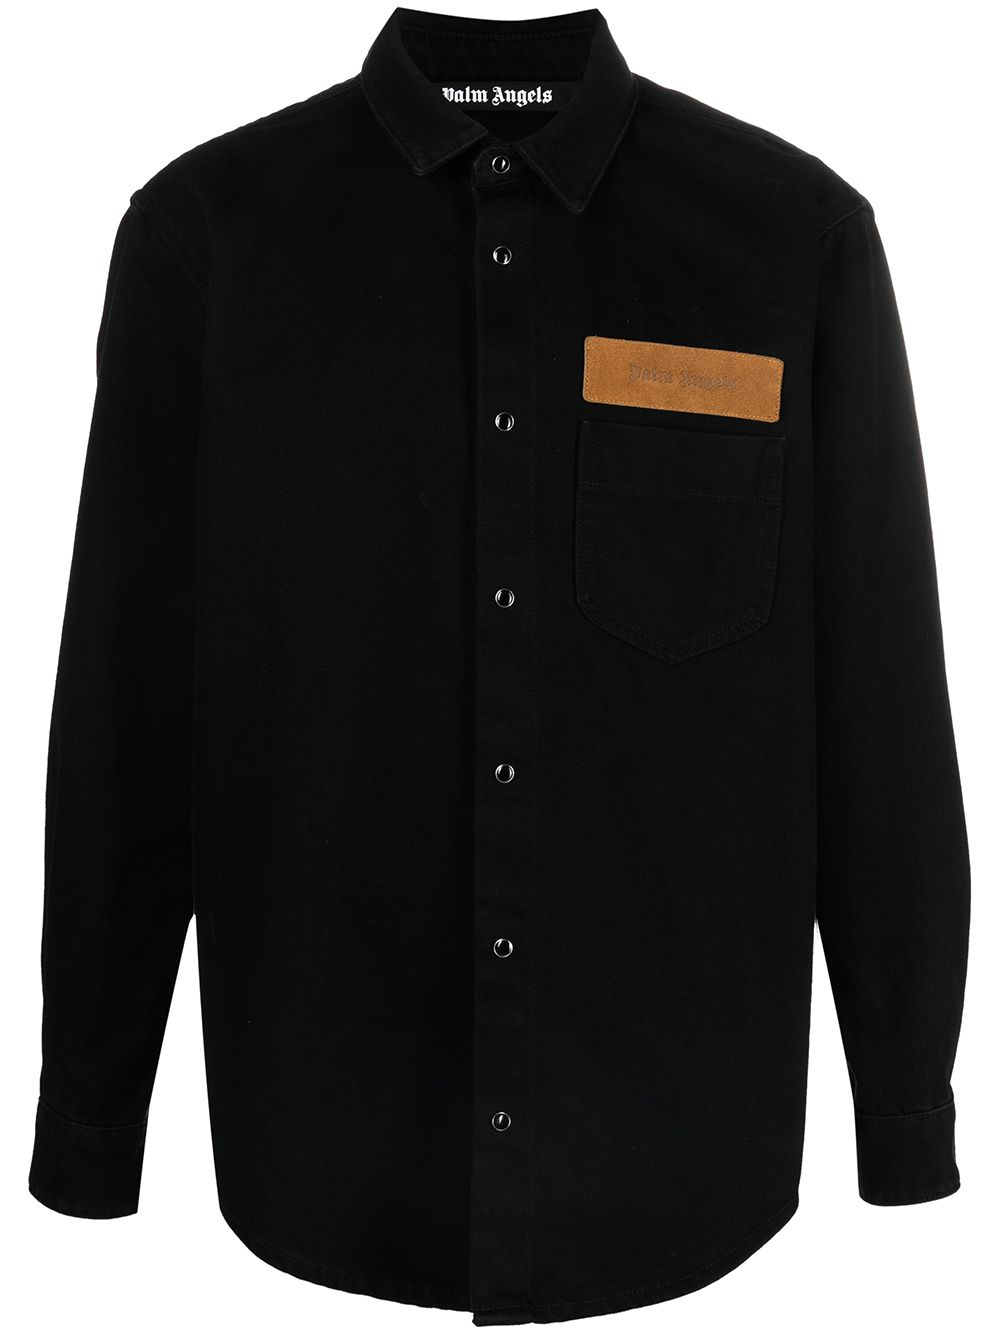 PALM ANGELS Curved Logo Denim Shirt Black